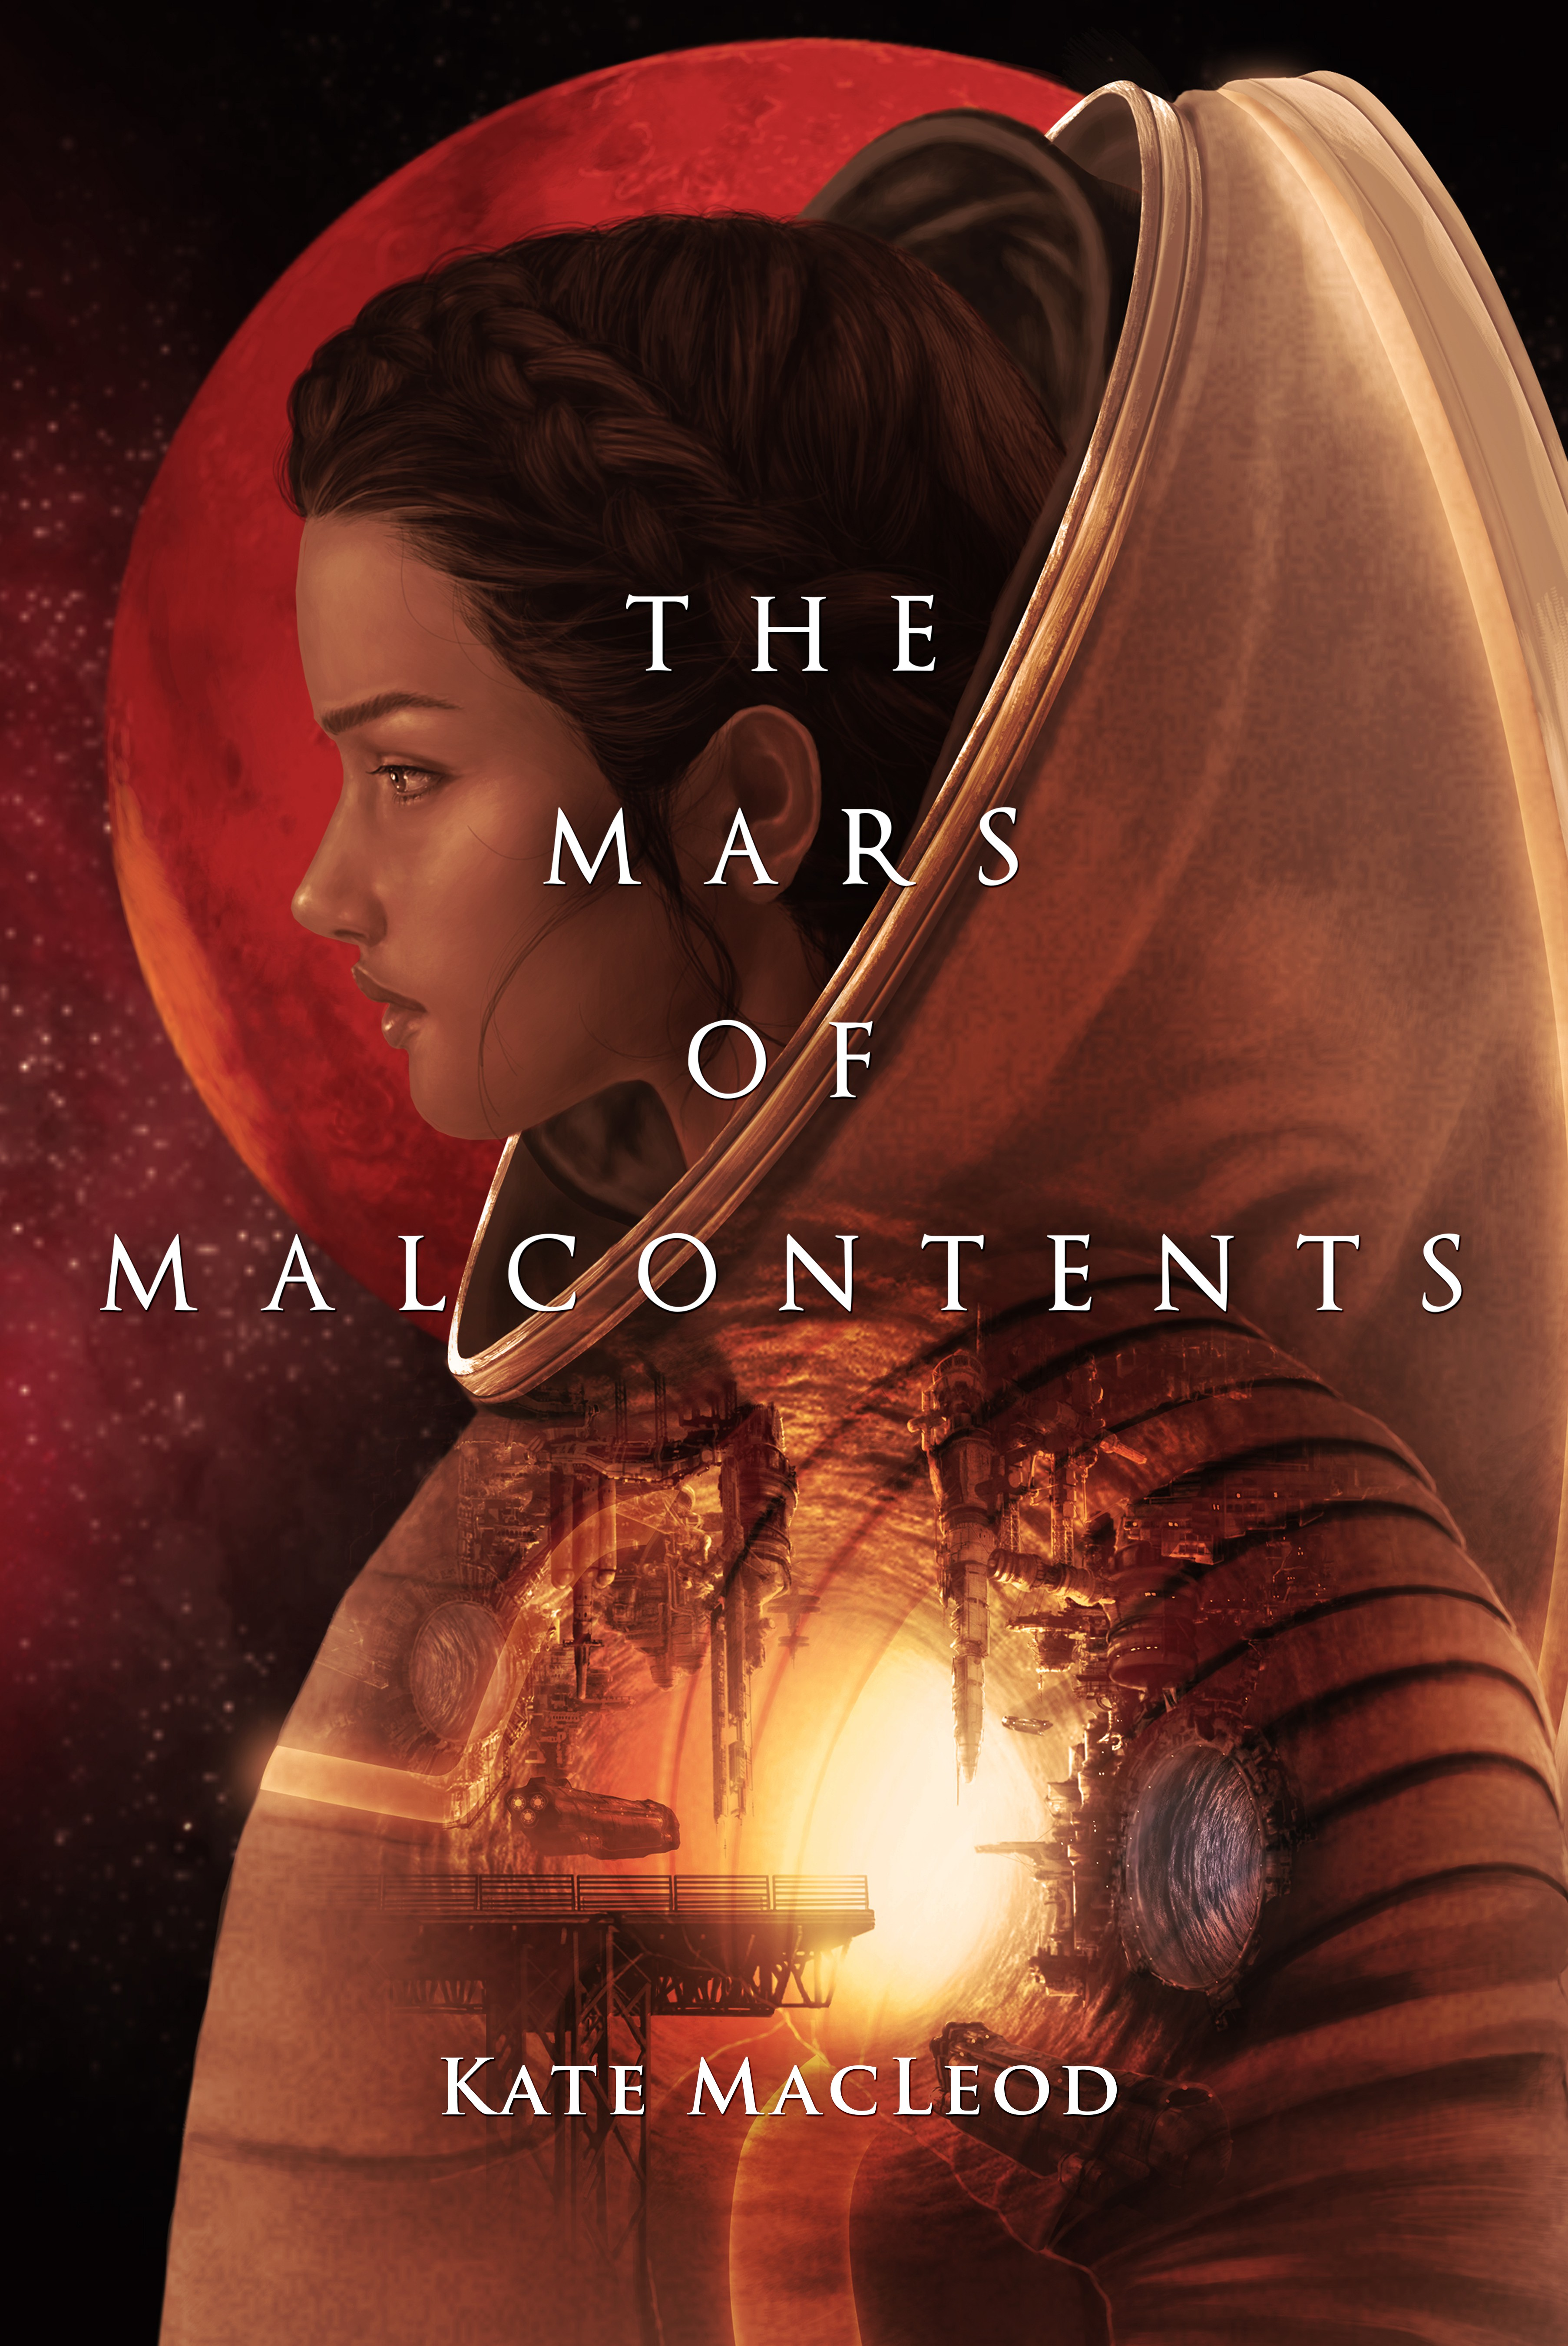 The Mars of Malcontents